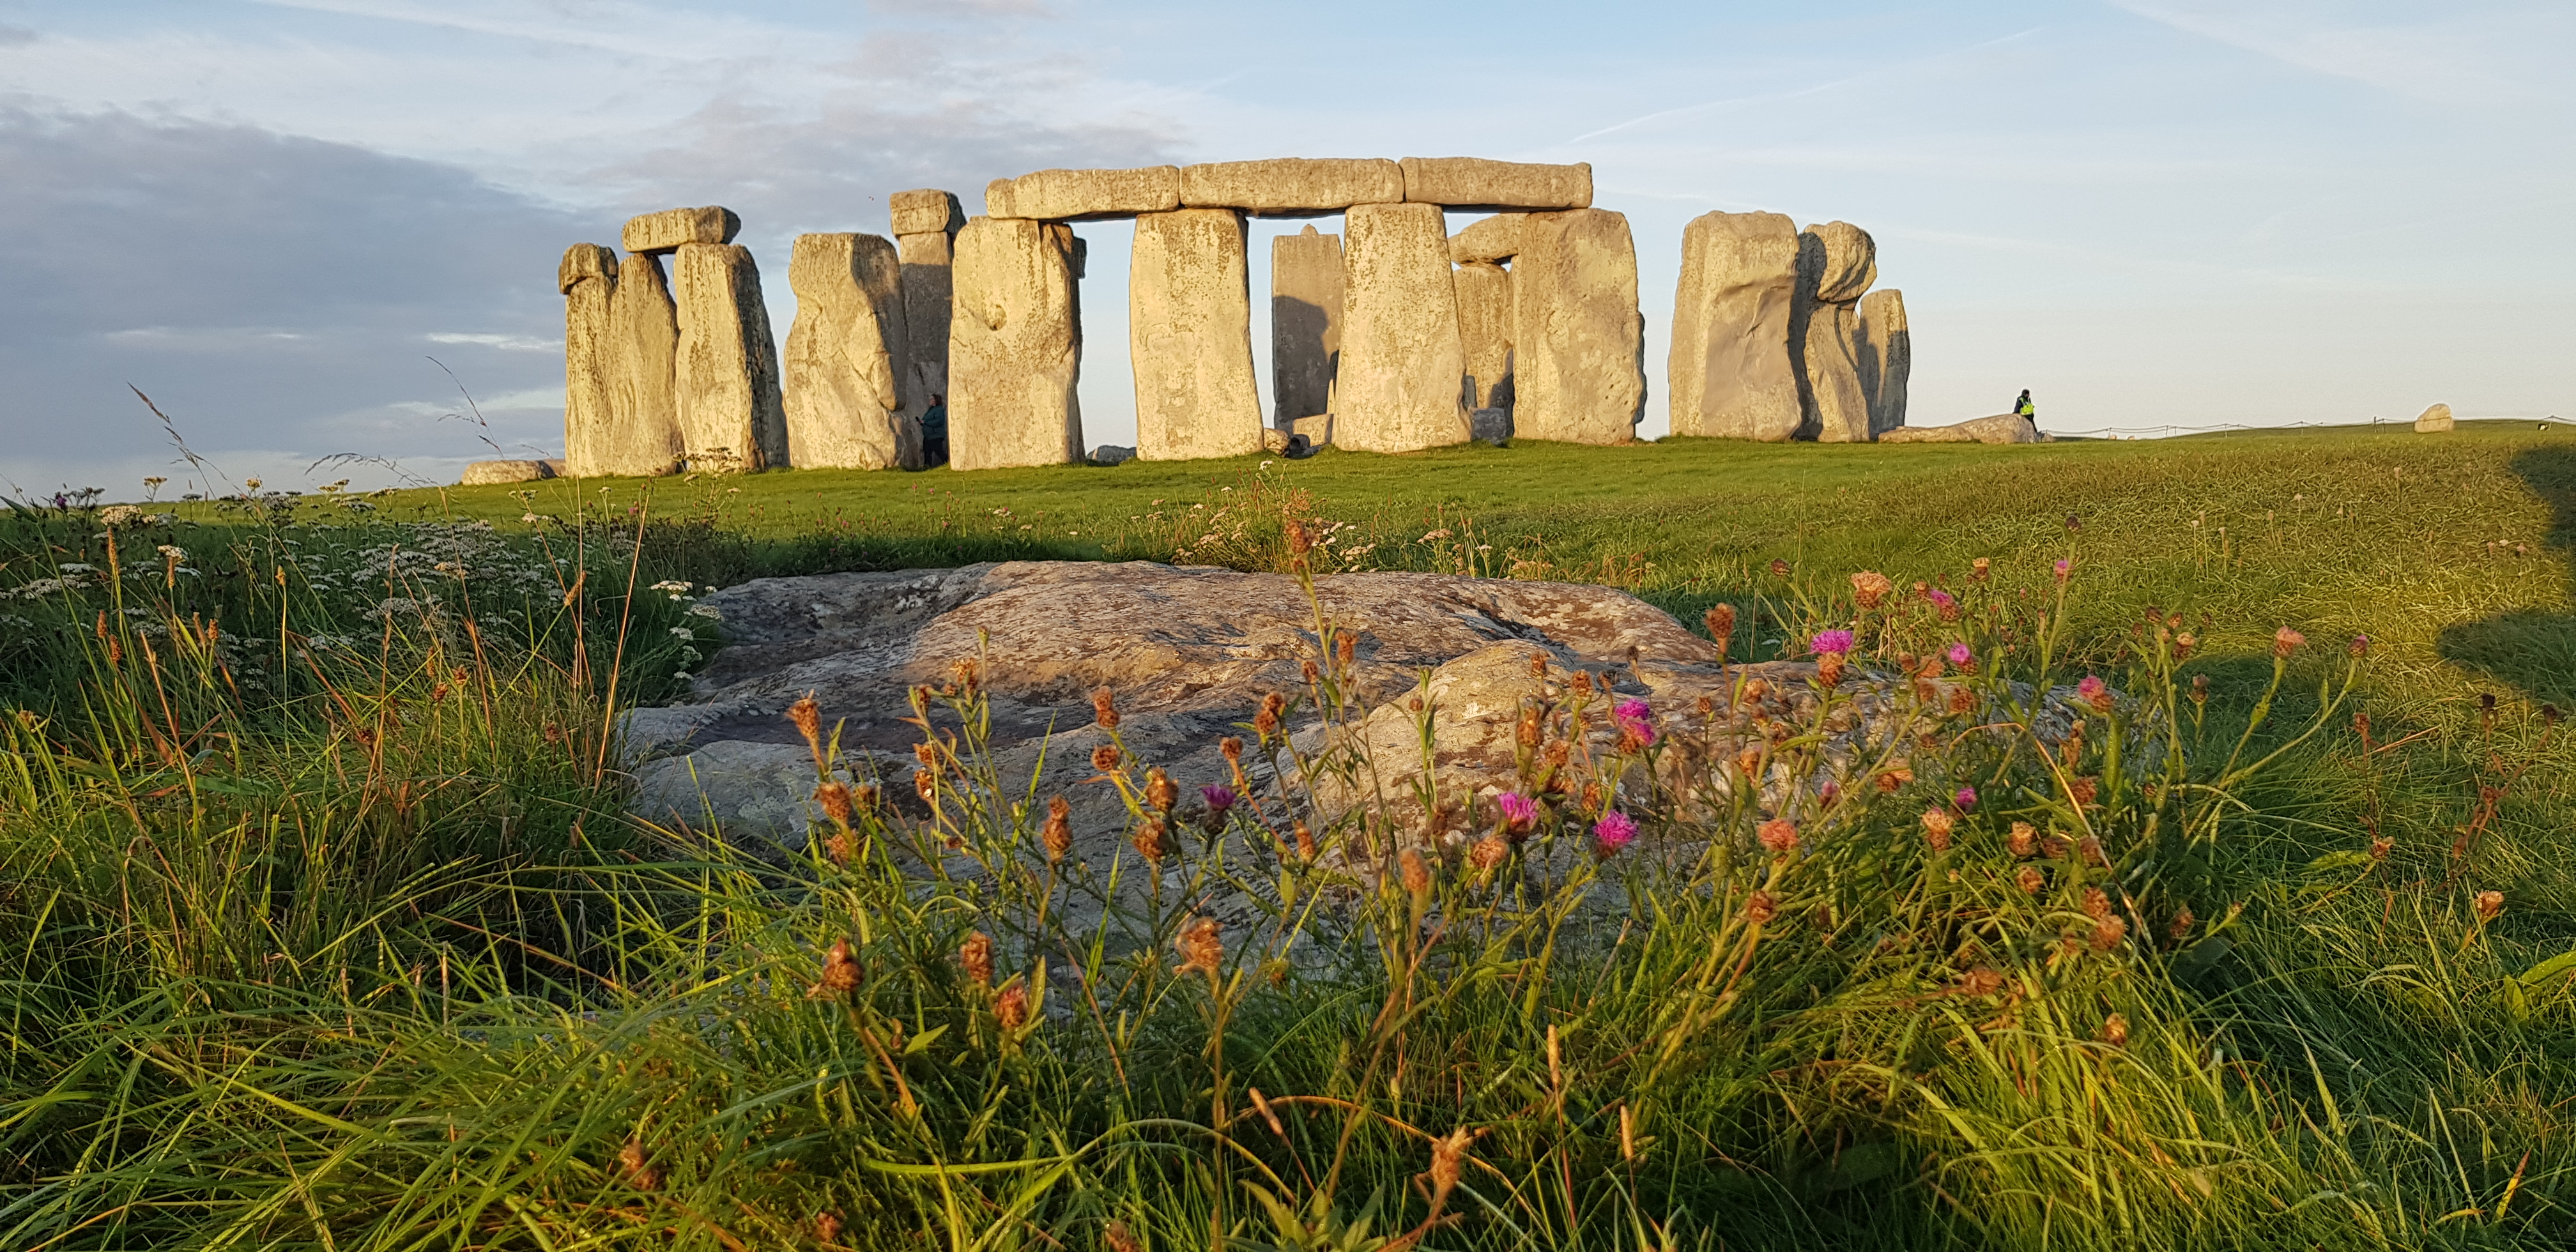 Stonehenge Stone Circle.  Guided Tours